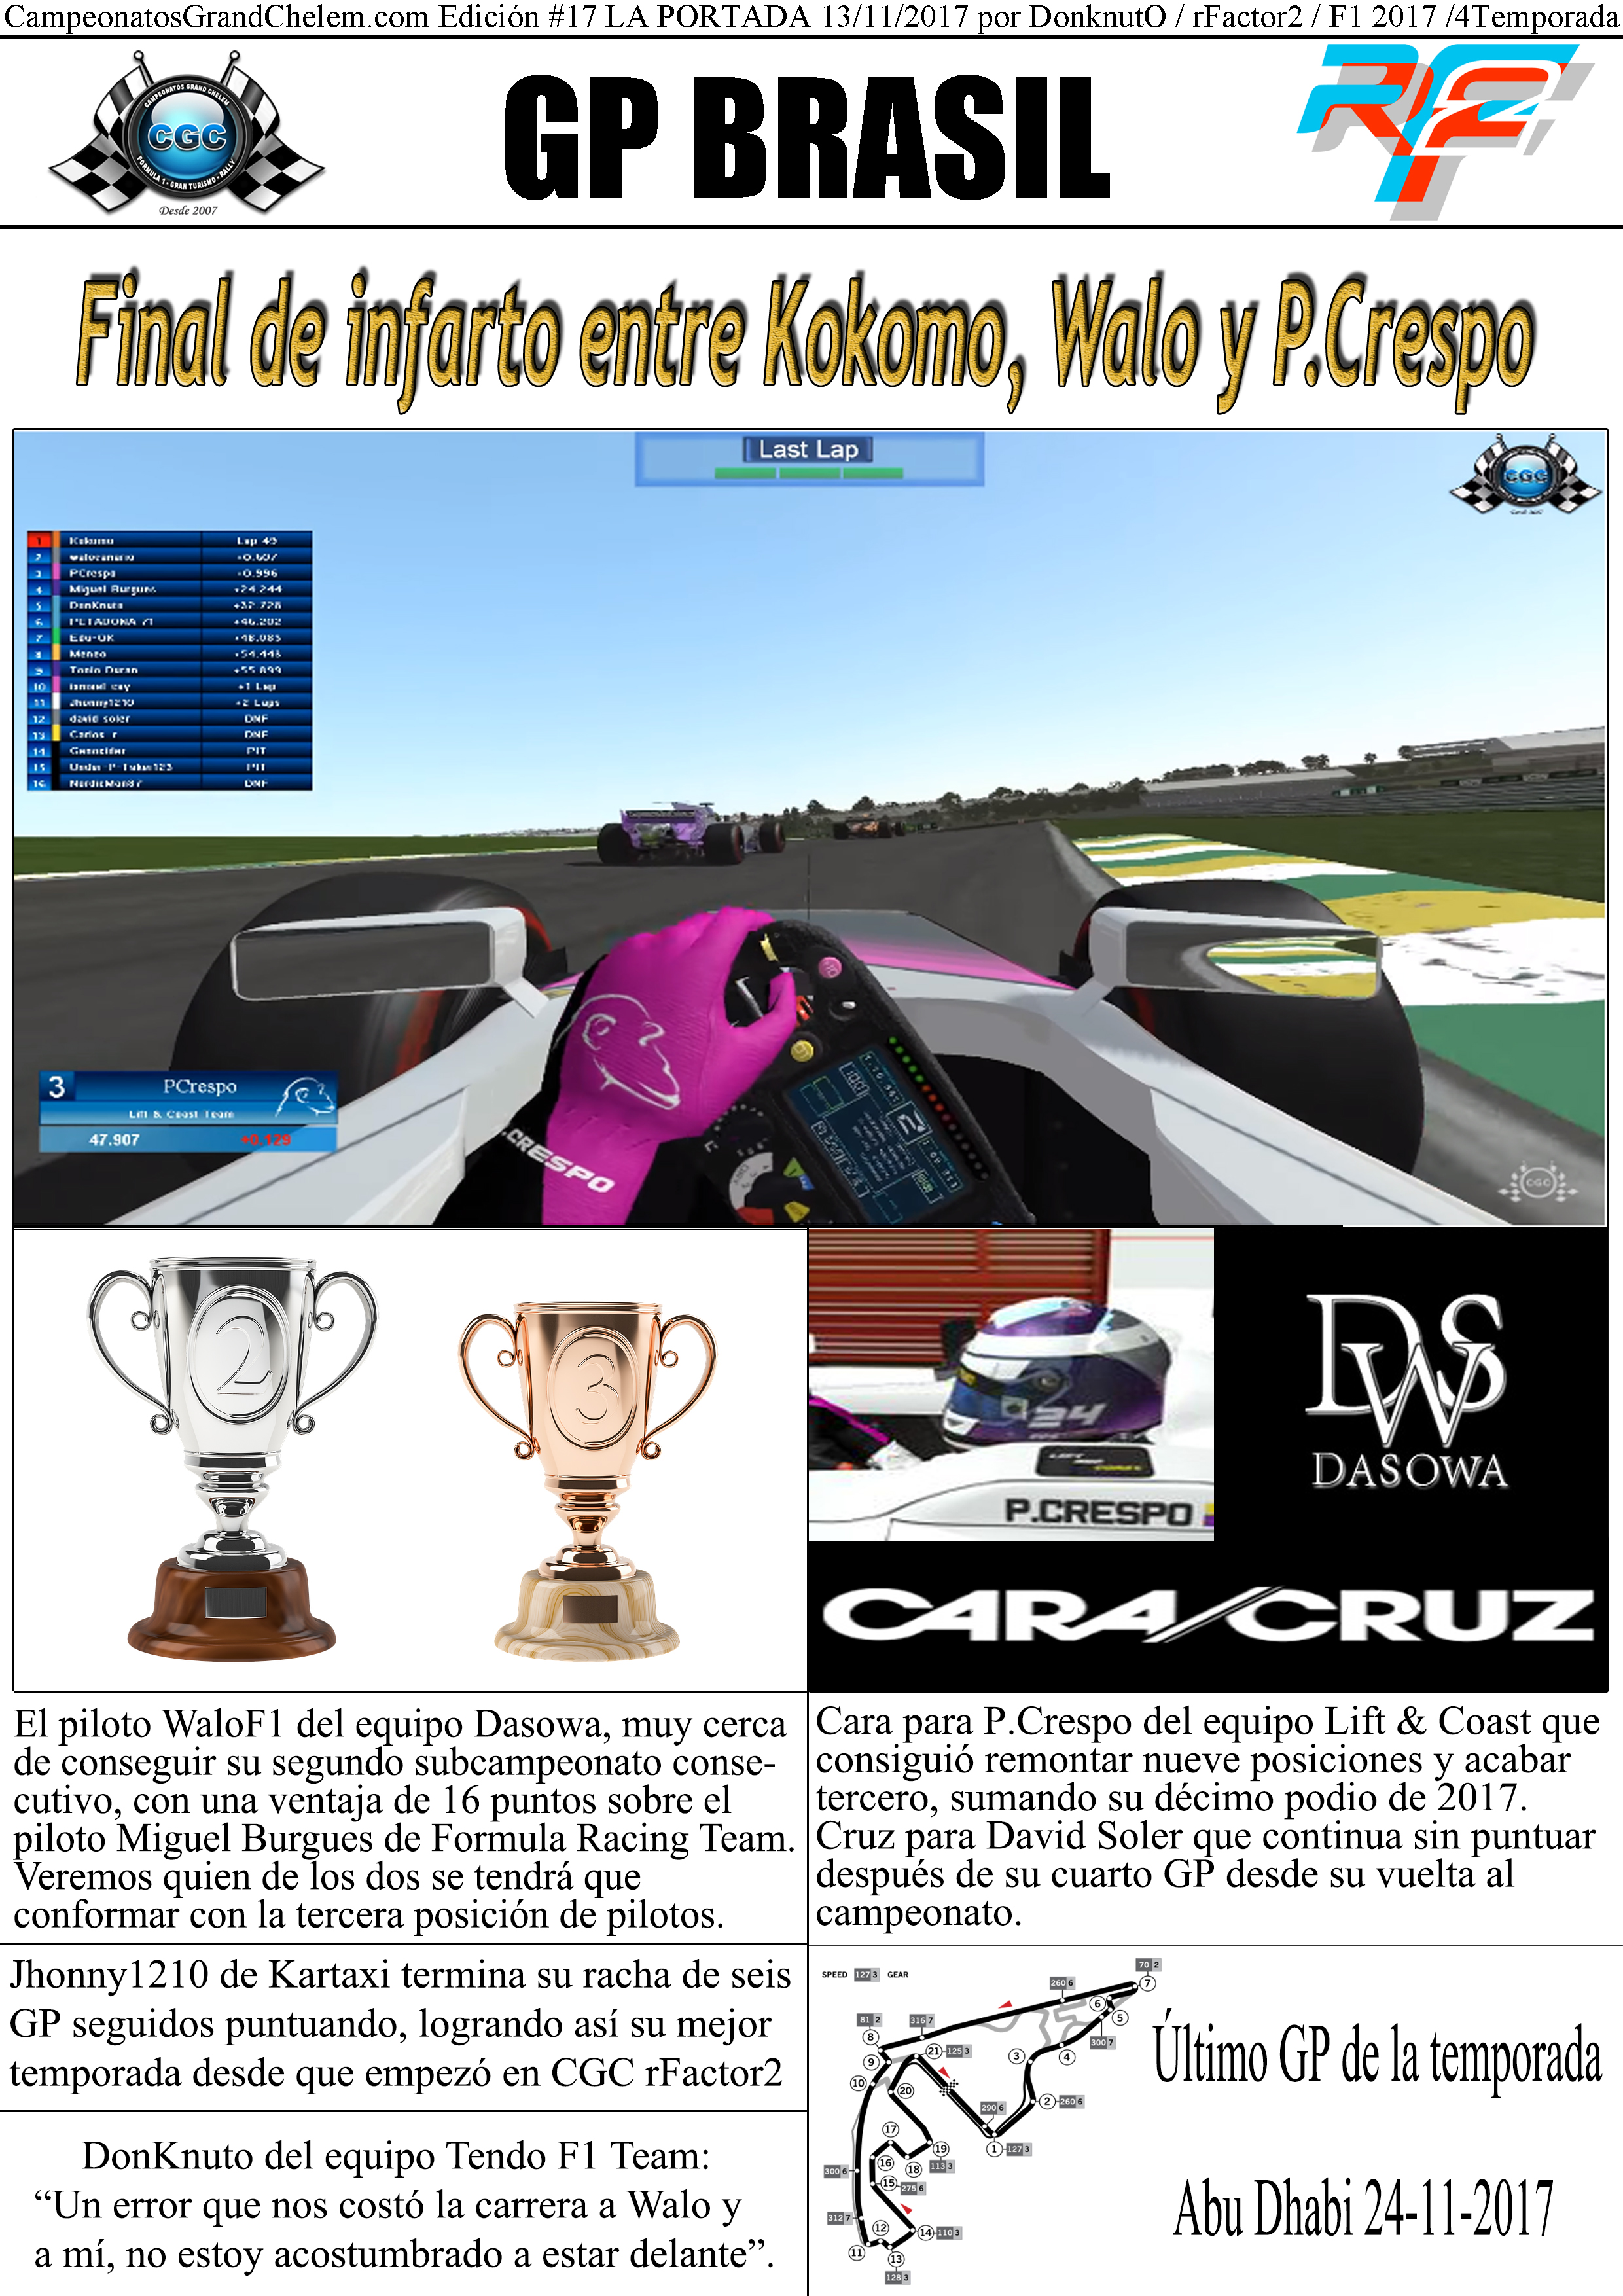 Campeonatos CGC | F1 GT6 Rally PCars rFactor :: PC PS3 PS4 Online - Portal 591d6680f82cd816b7f6716c4c8056c1o